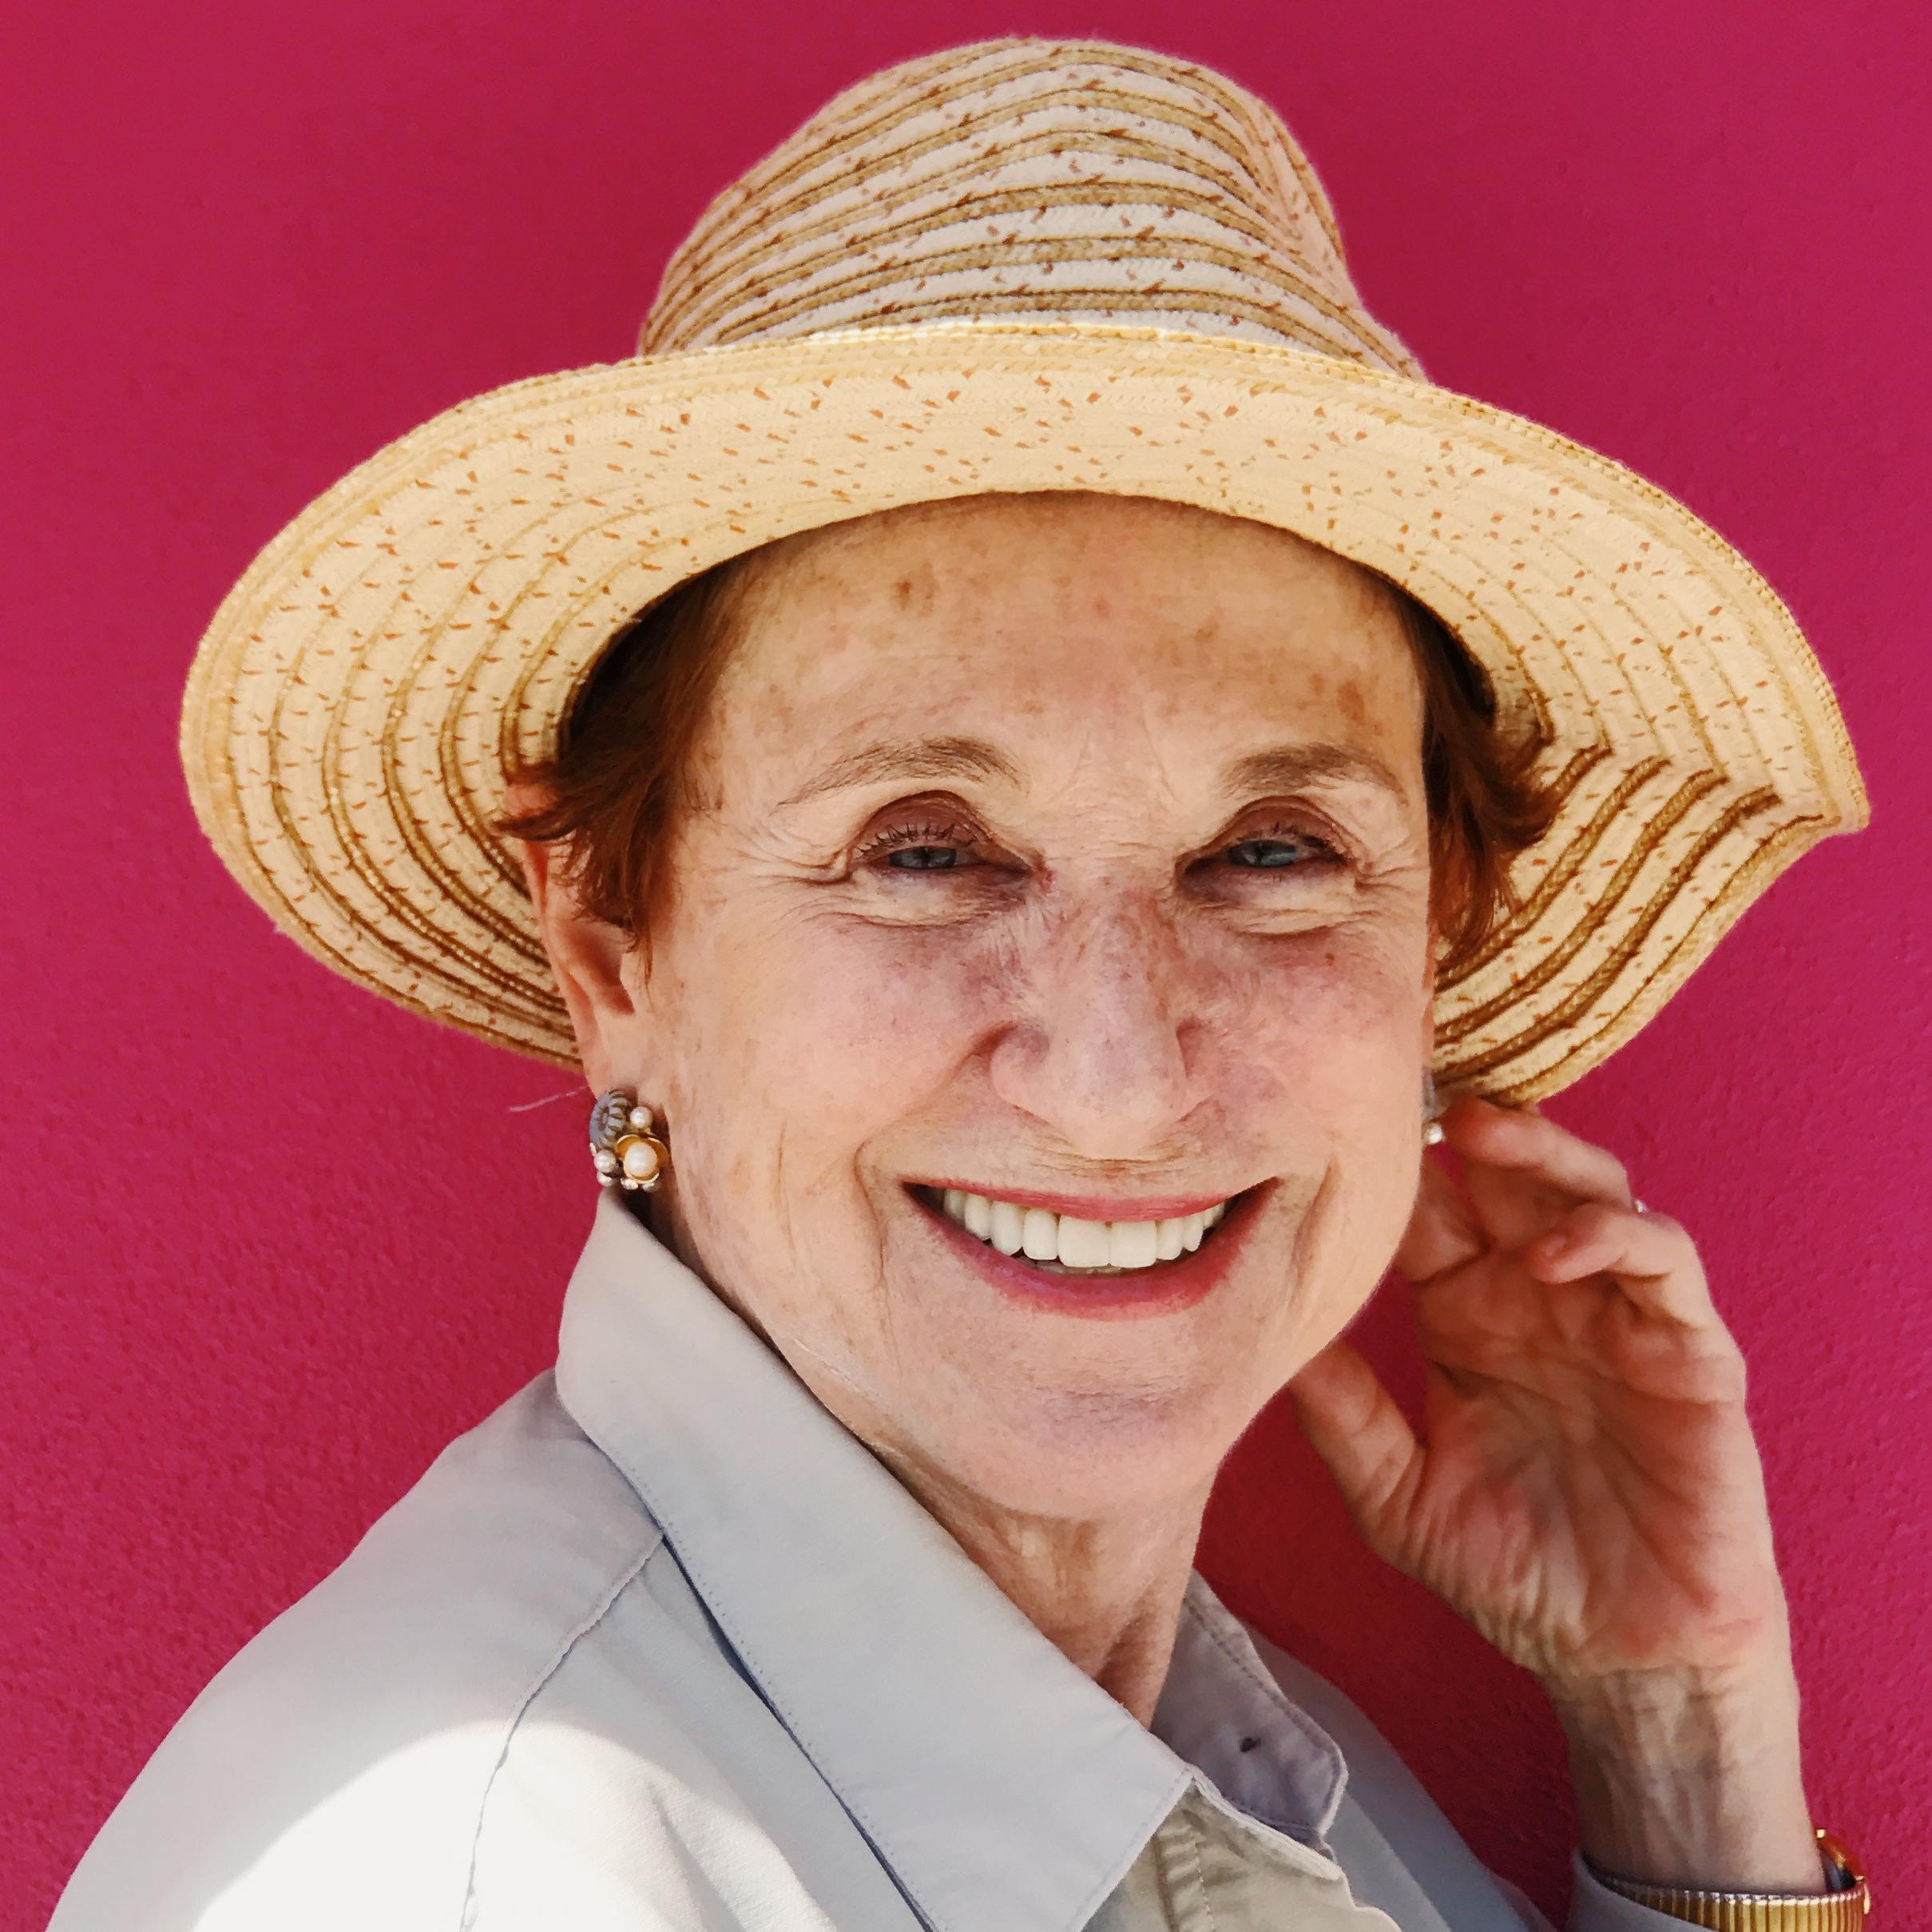 Smiling lady in straw hat